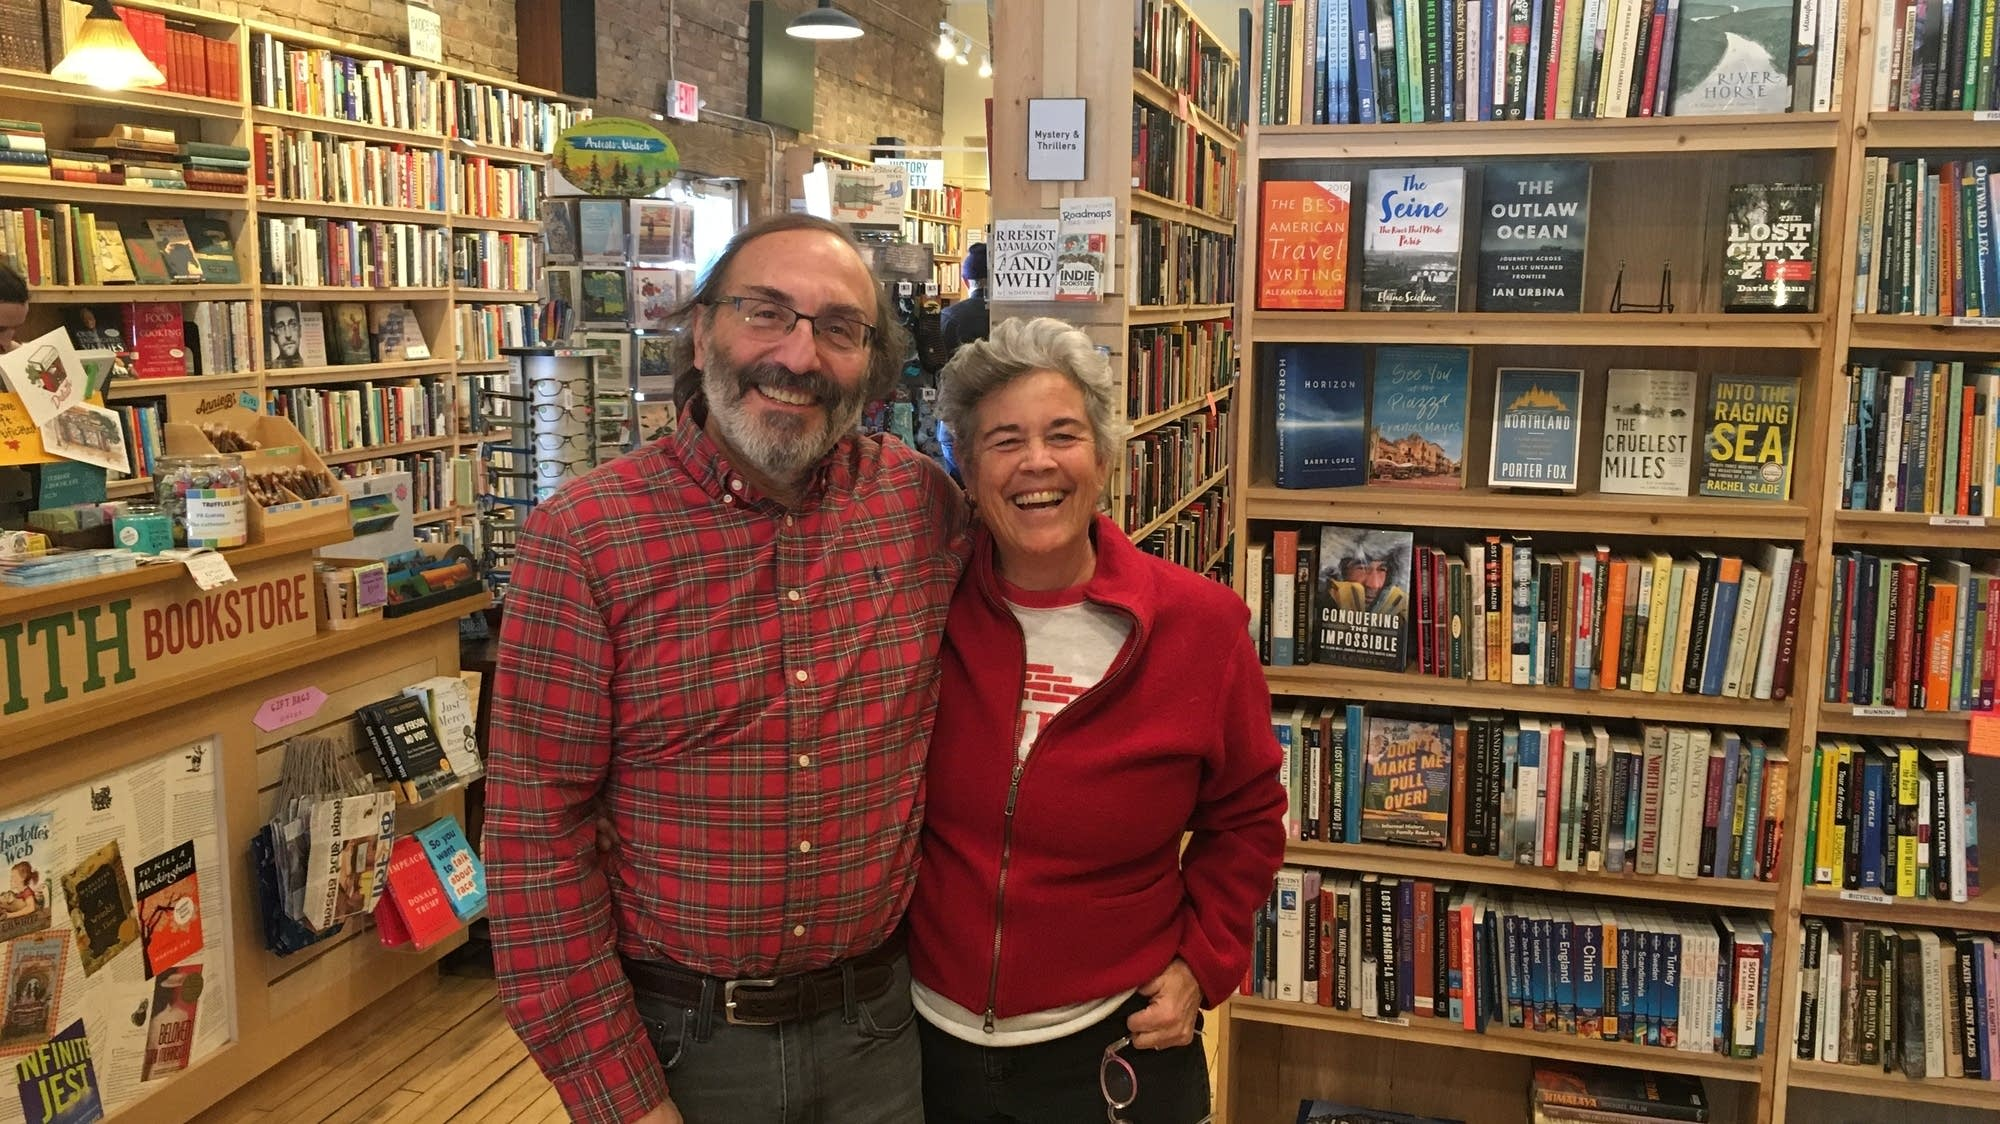 Indie booksellers create community to survive the age of Amazon